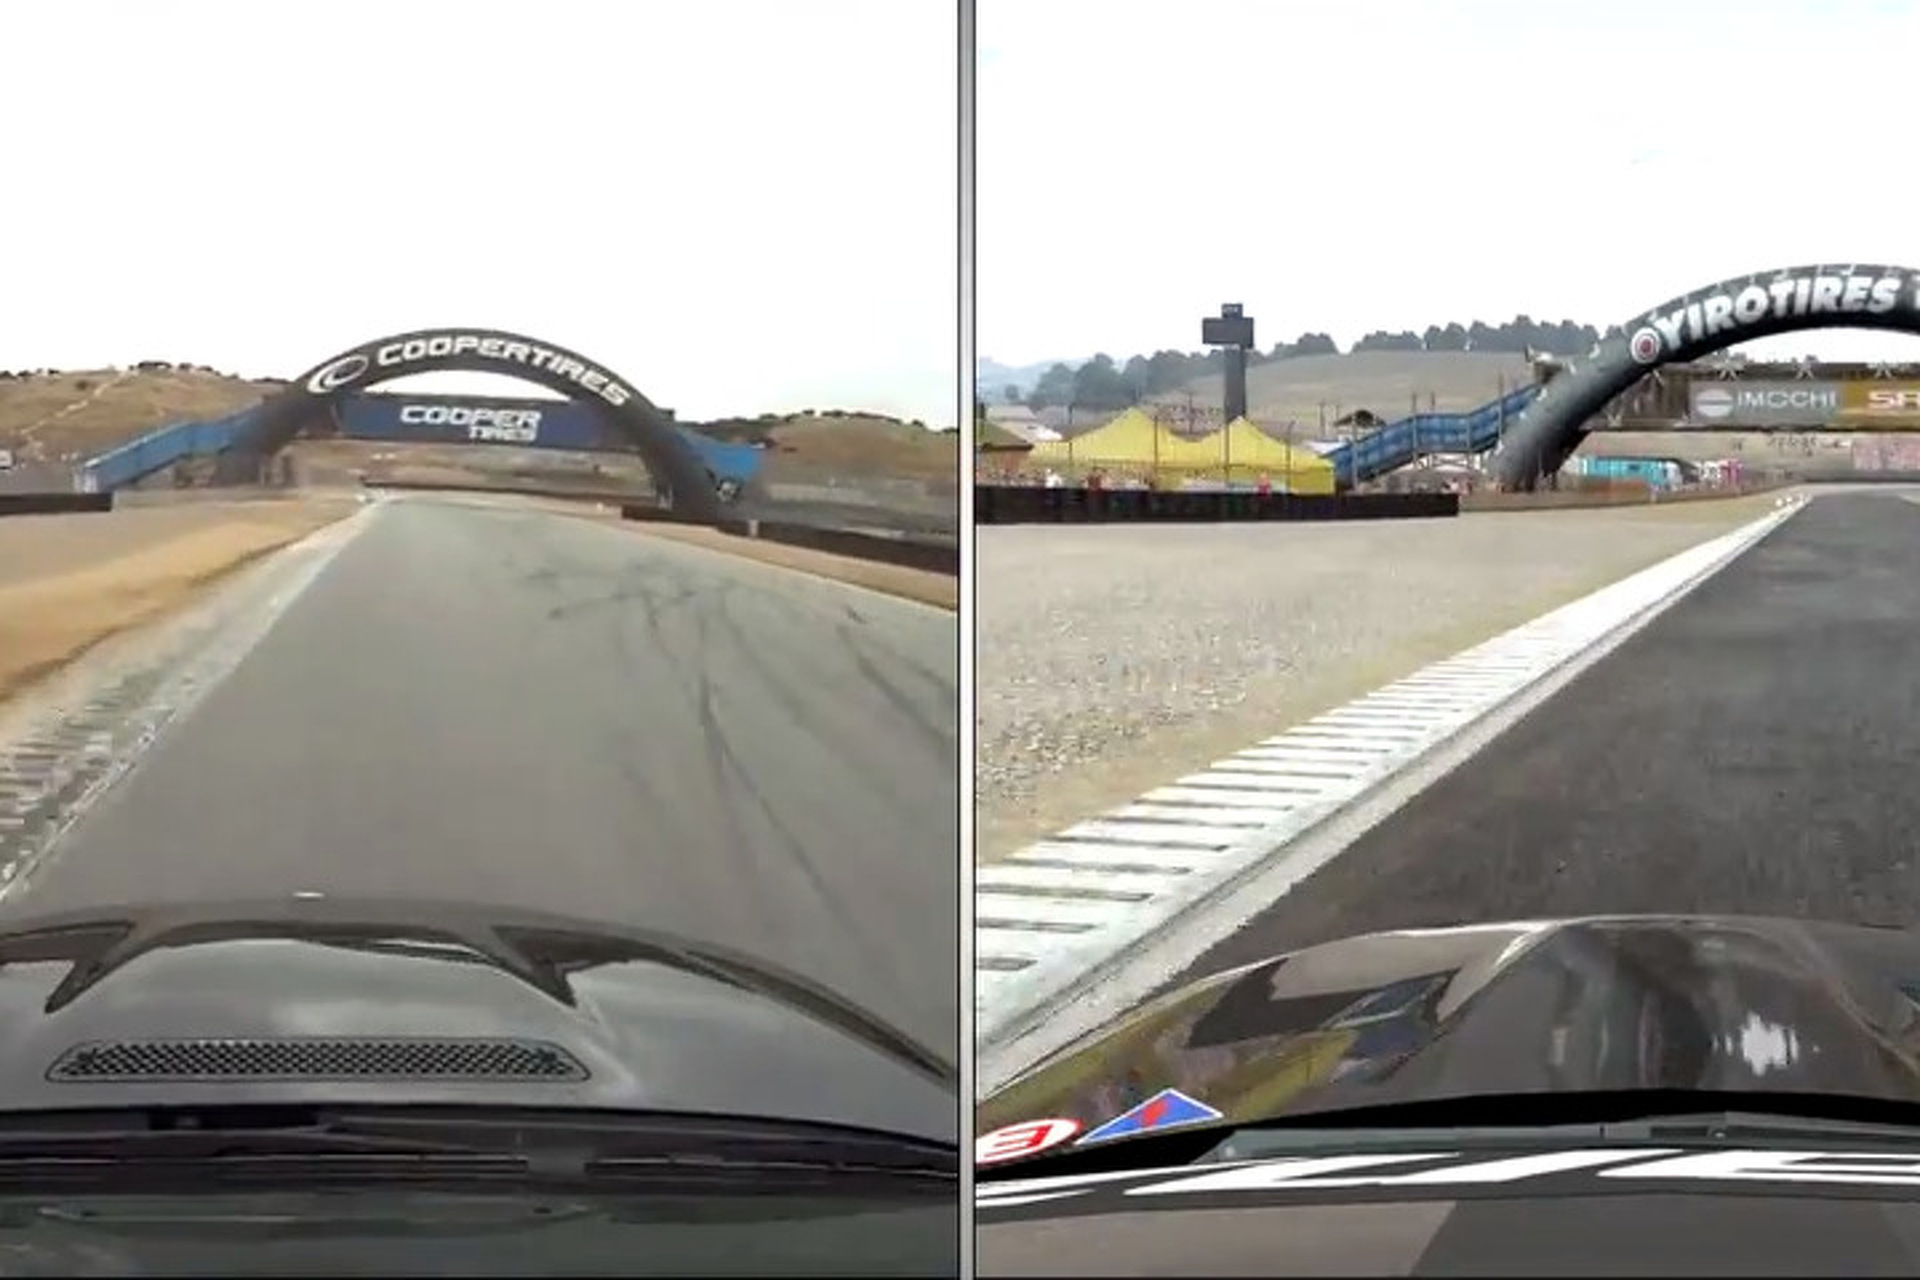 Project CARS Racing Simulator As Good As Reality [video]